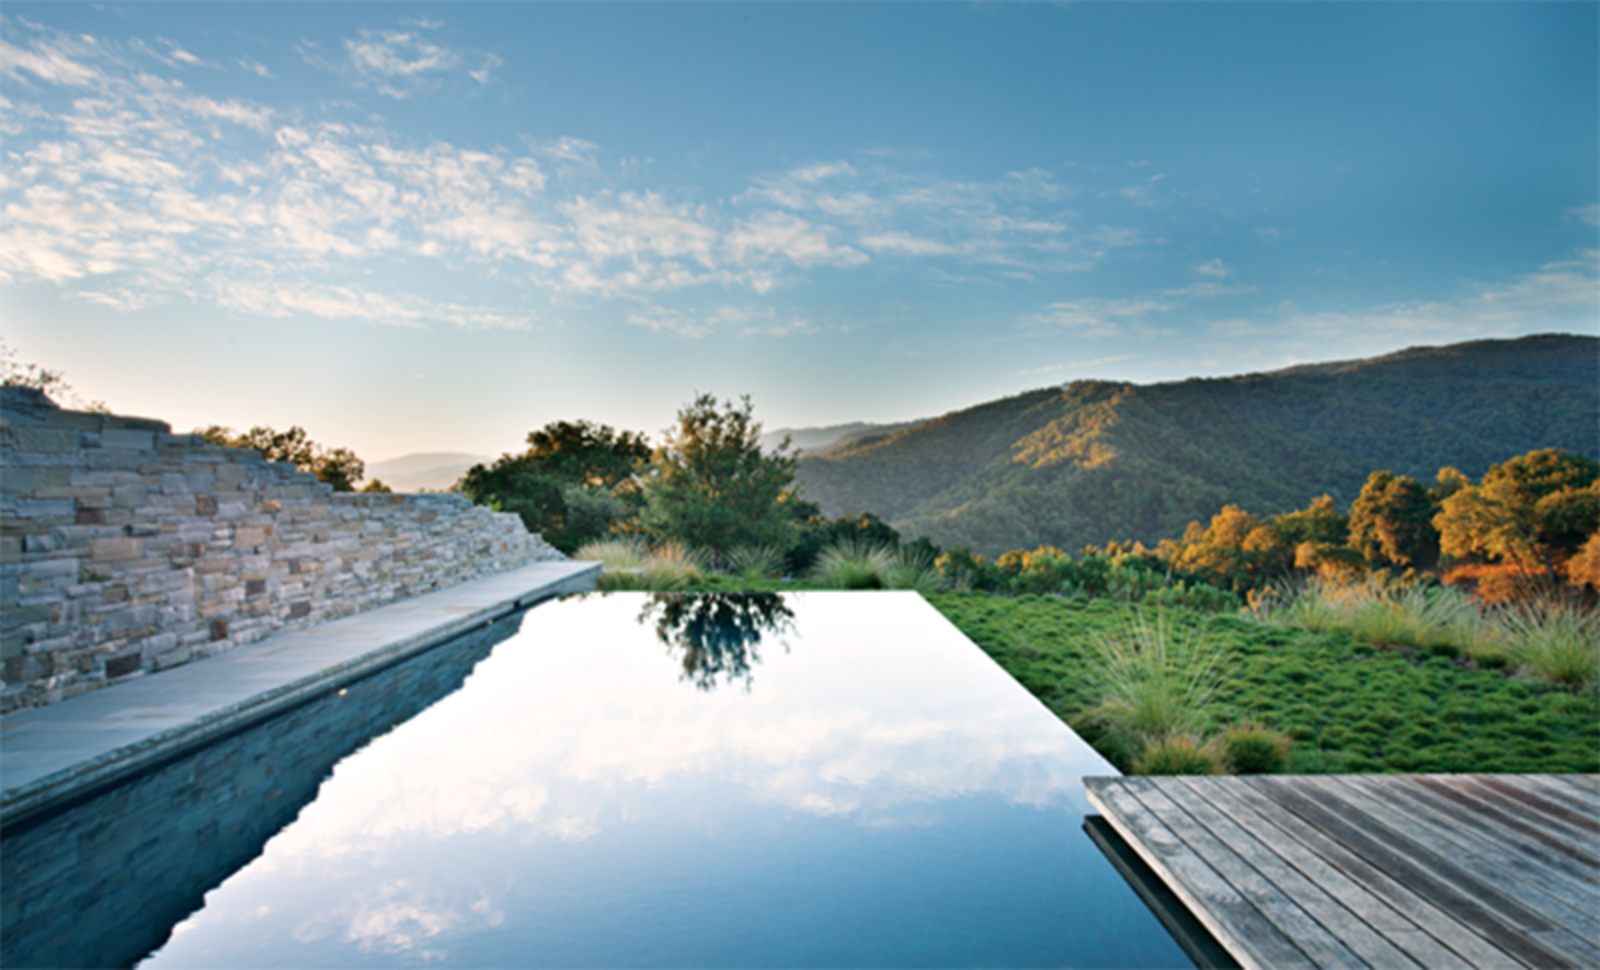 Bernard Trainor collaborated with architect Peter Bohlin for a pool design in the Santa Lucia Preserve. Photo by: Jason Liske. Published in the April 2013 issue of Dwell.  Photo 1 of 1 in Landscape Architect Bernard Trainor